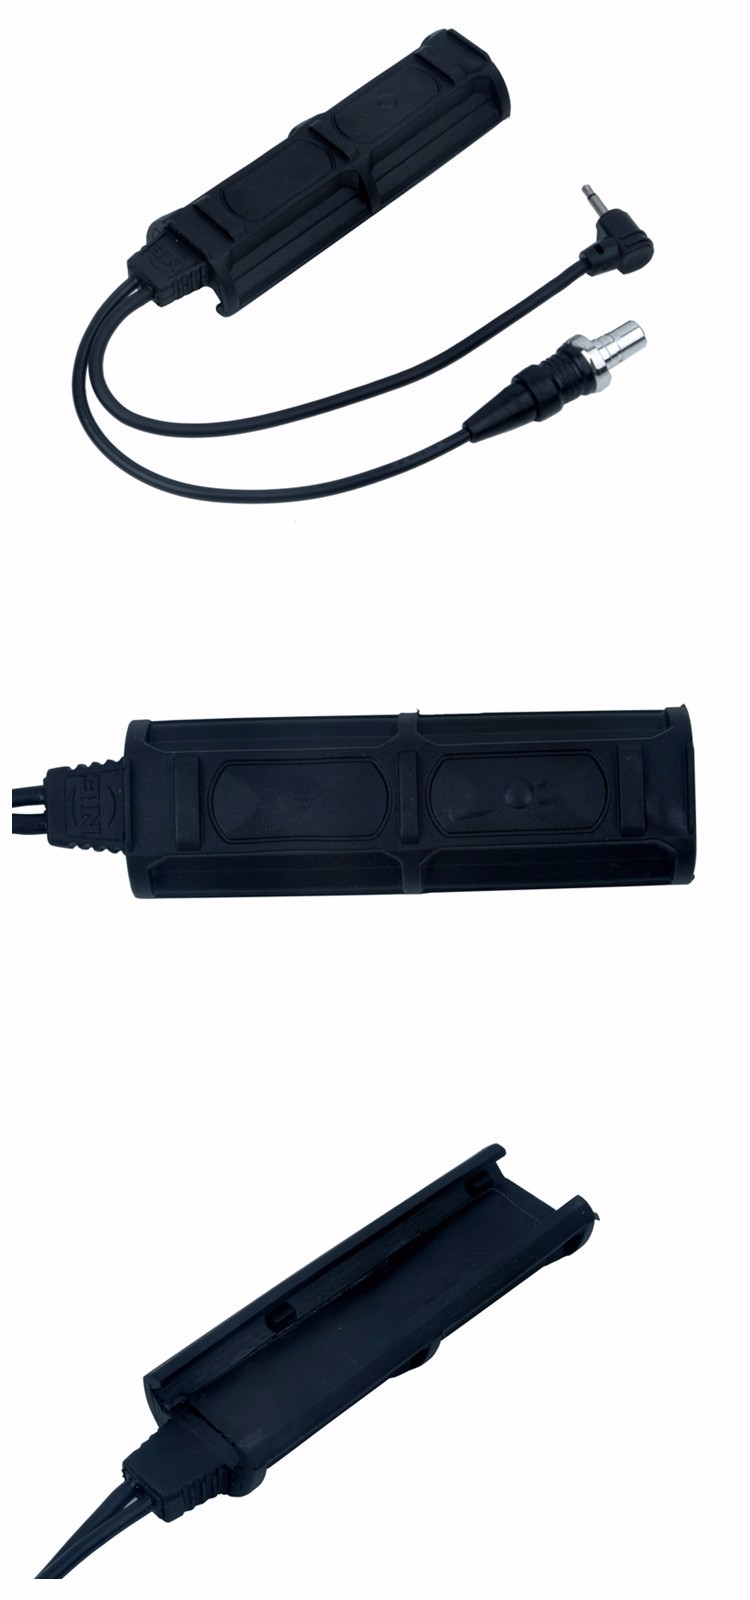 For PEQ Tactical Remote Dual Switch 2 Plug Pressure Pad Switch Flashlights